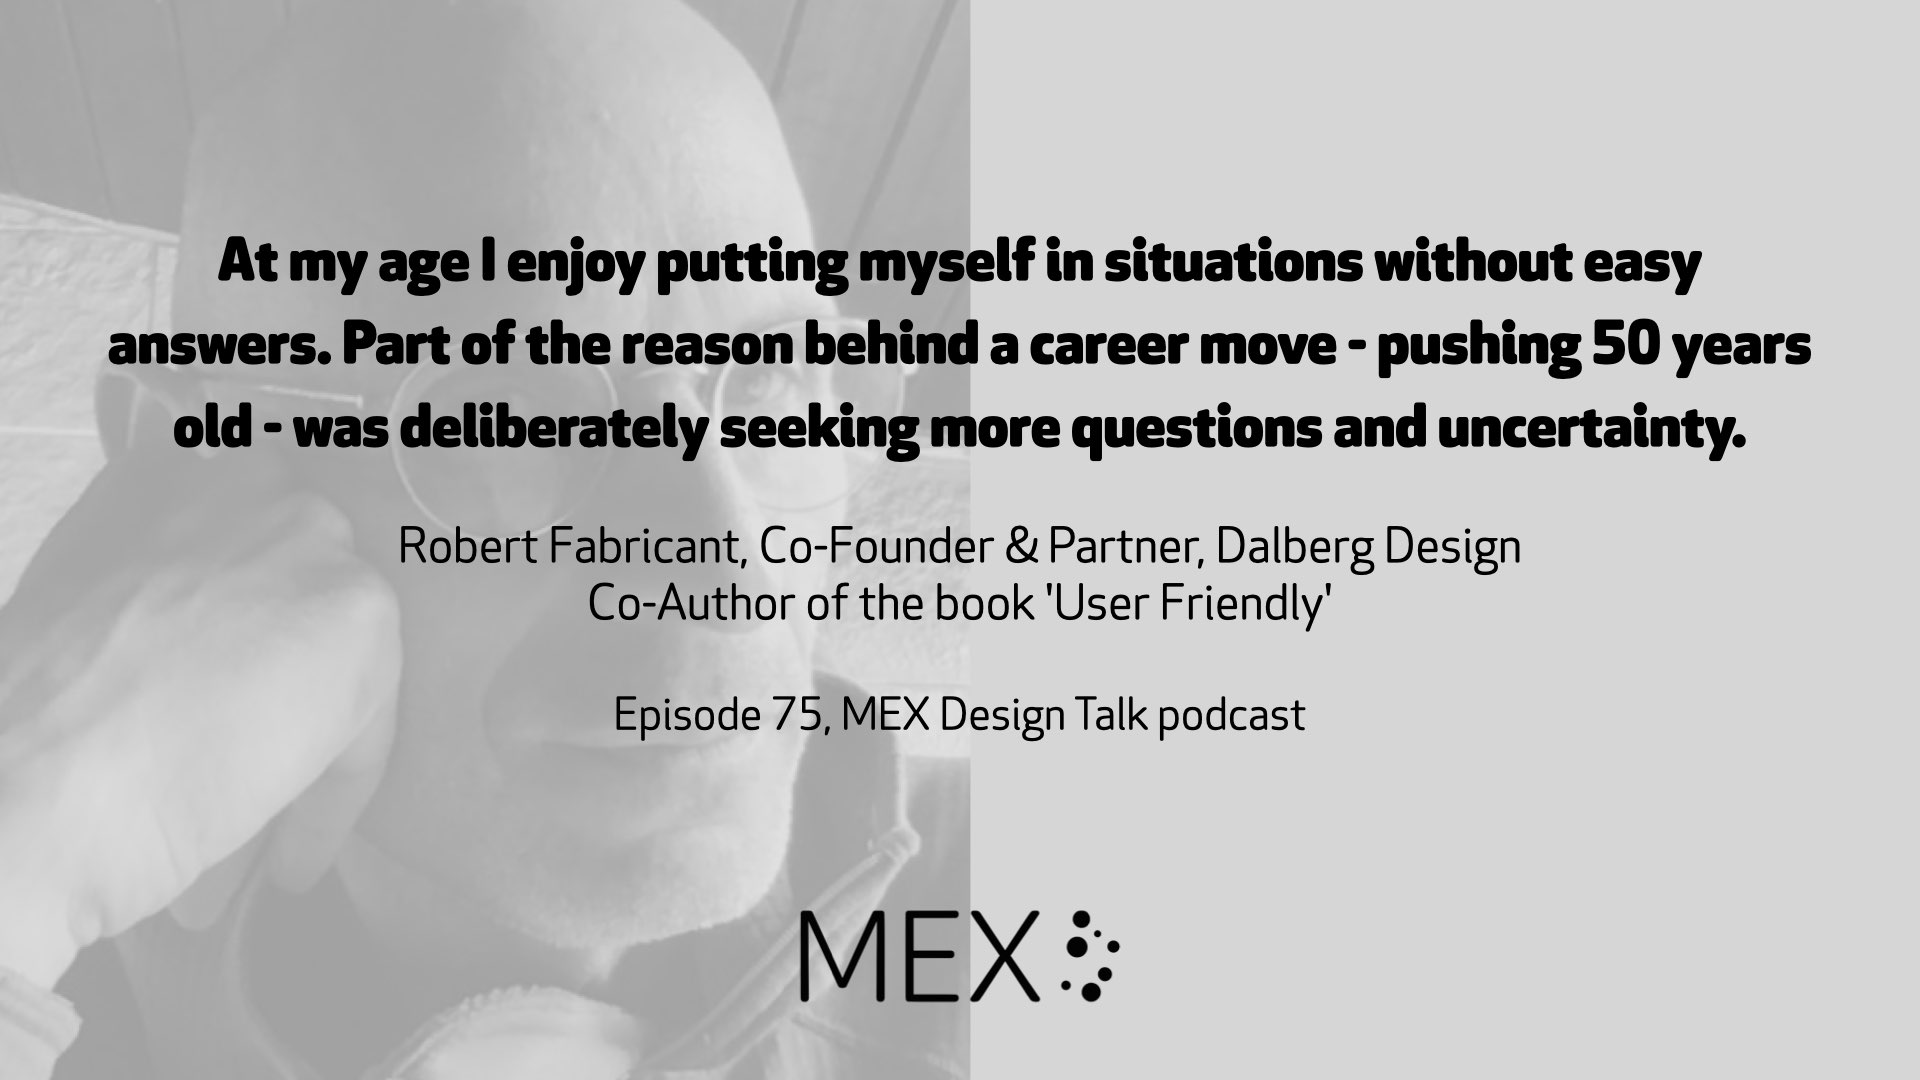 At my age I enjoy putting myself in situations without easy answers. Part of the reason behind a career move - pushing 50 years old - was deliberately seeking more questions and uncertainty. Robert Fabricant, Co-Founder & Partner, Dalberg Design Co-Author of the book 'User Friendly' Episode 75, MEX Design Talk podcast